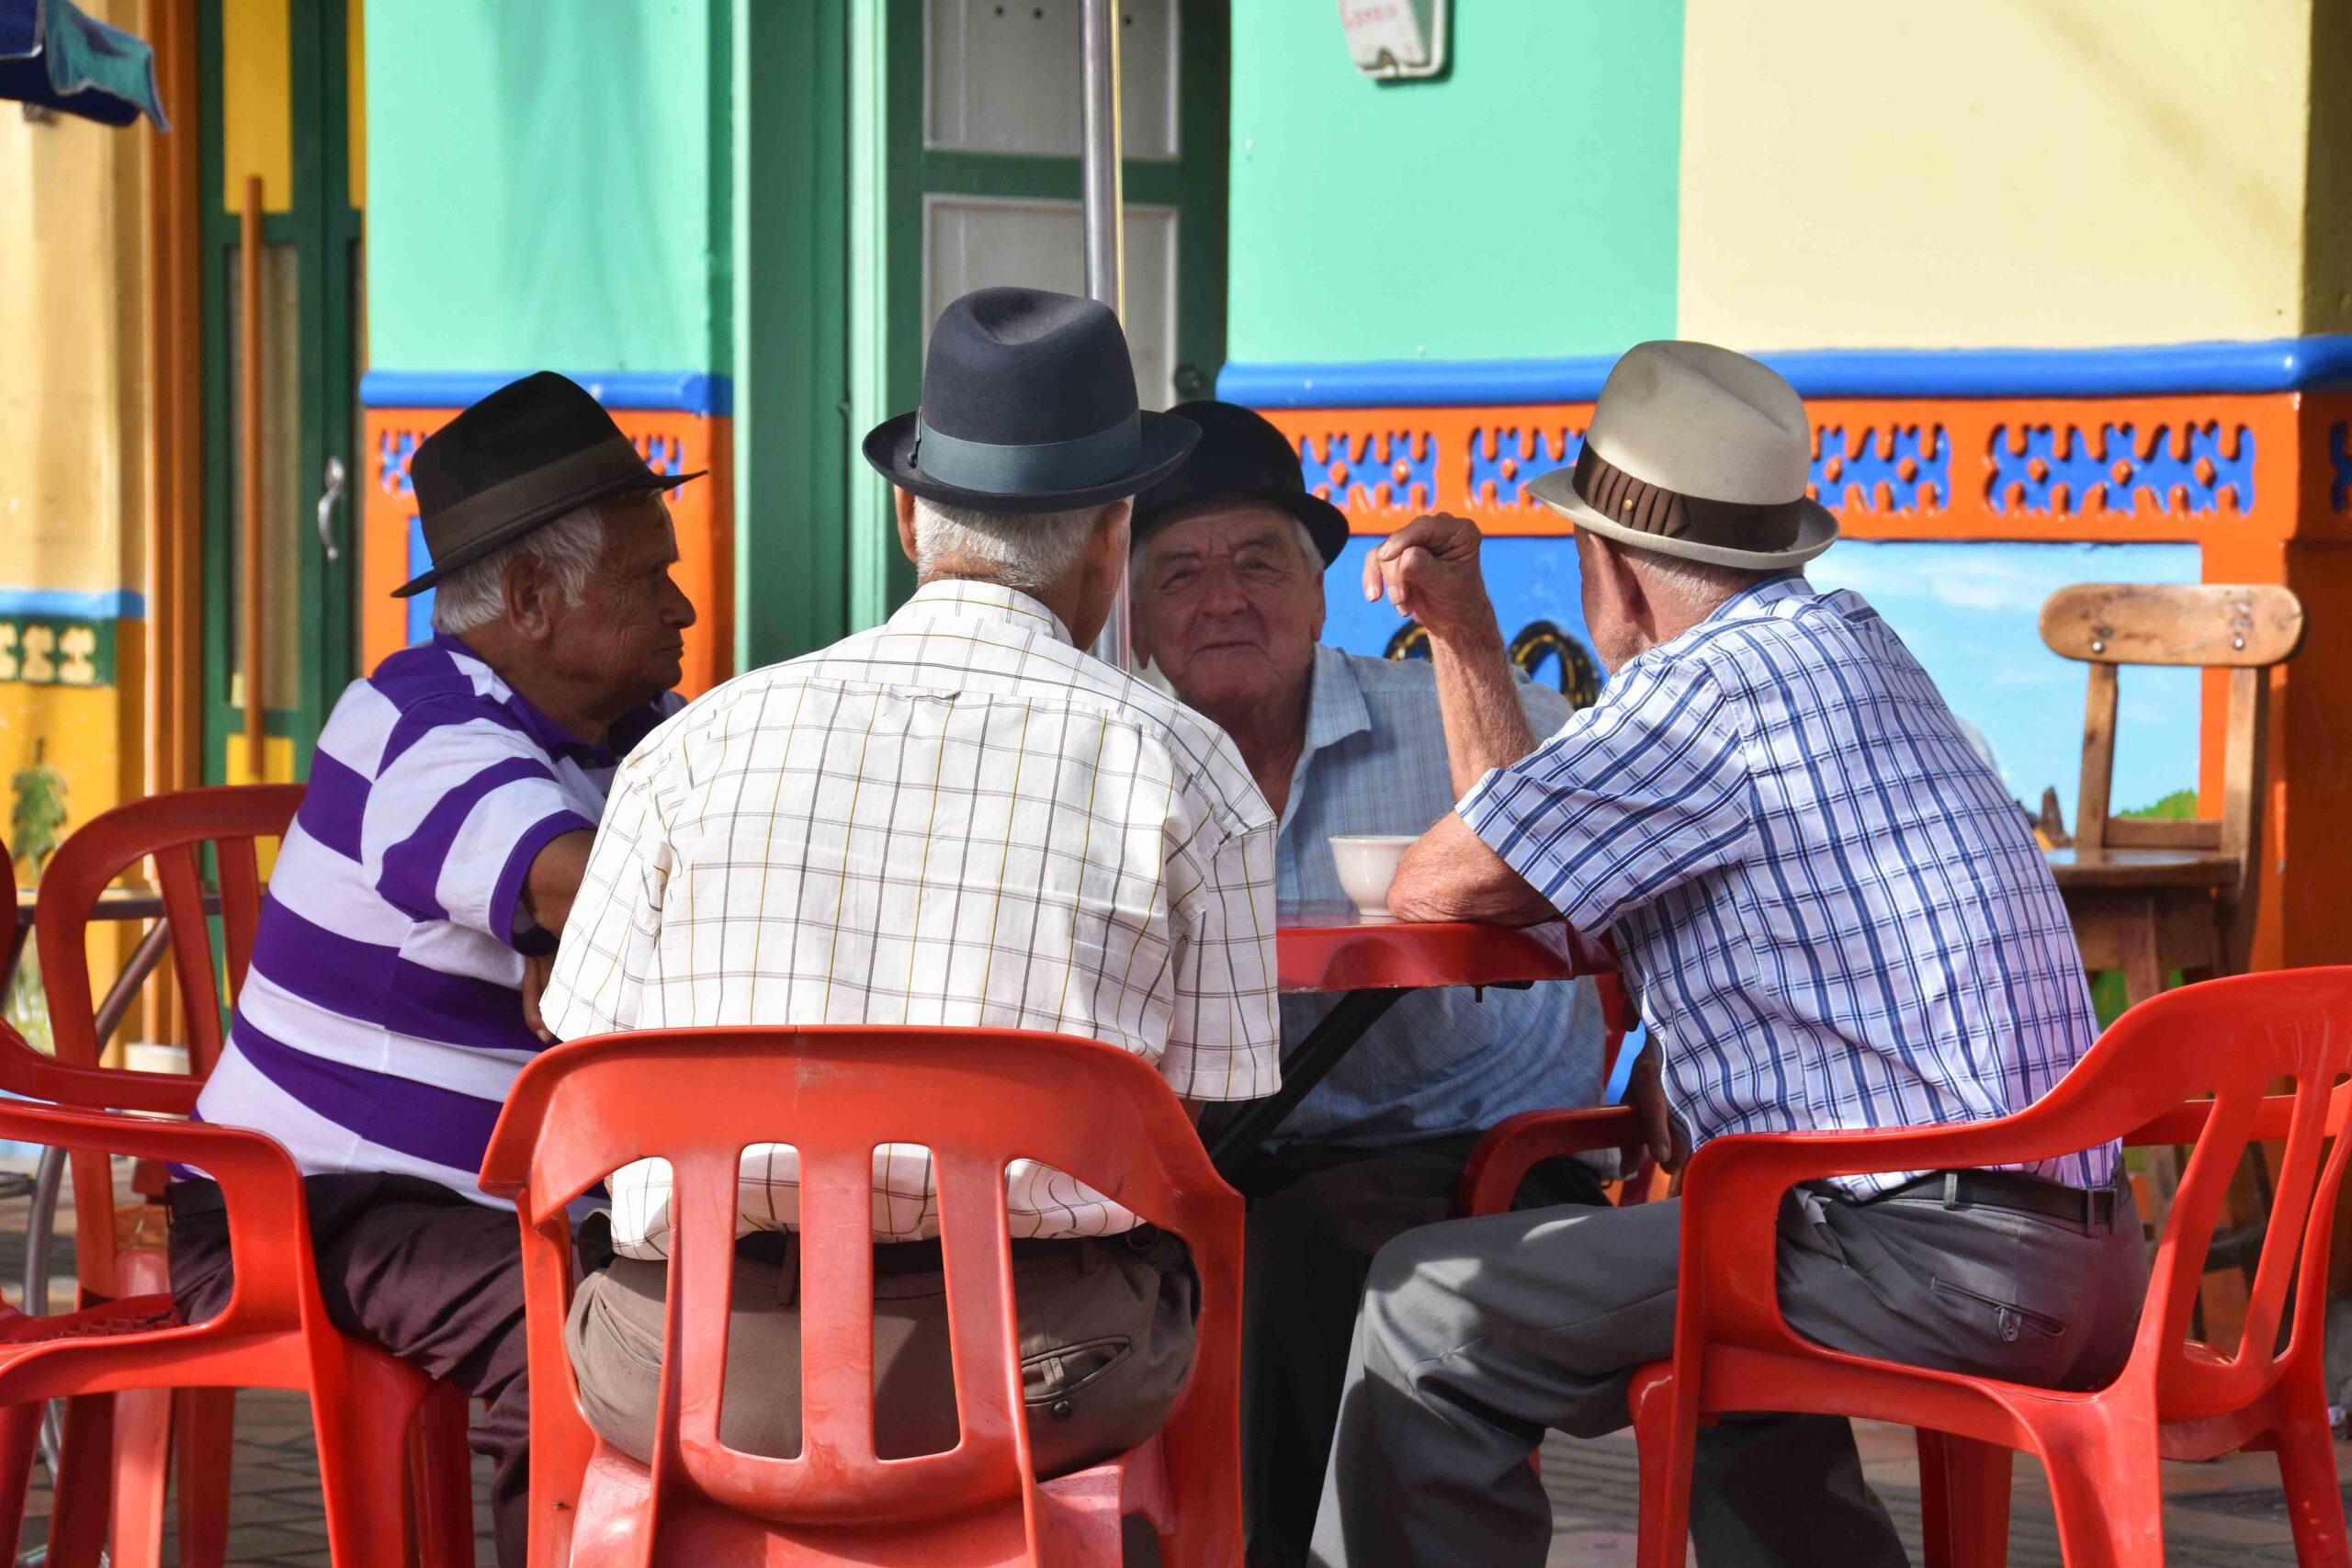 daily life in Guatape men with bowler hats